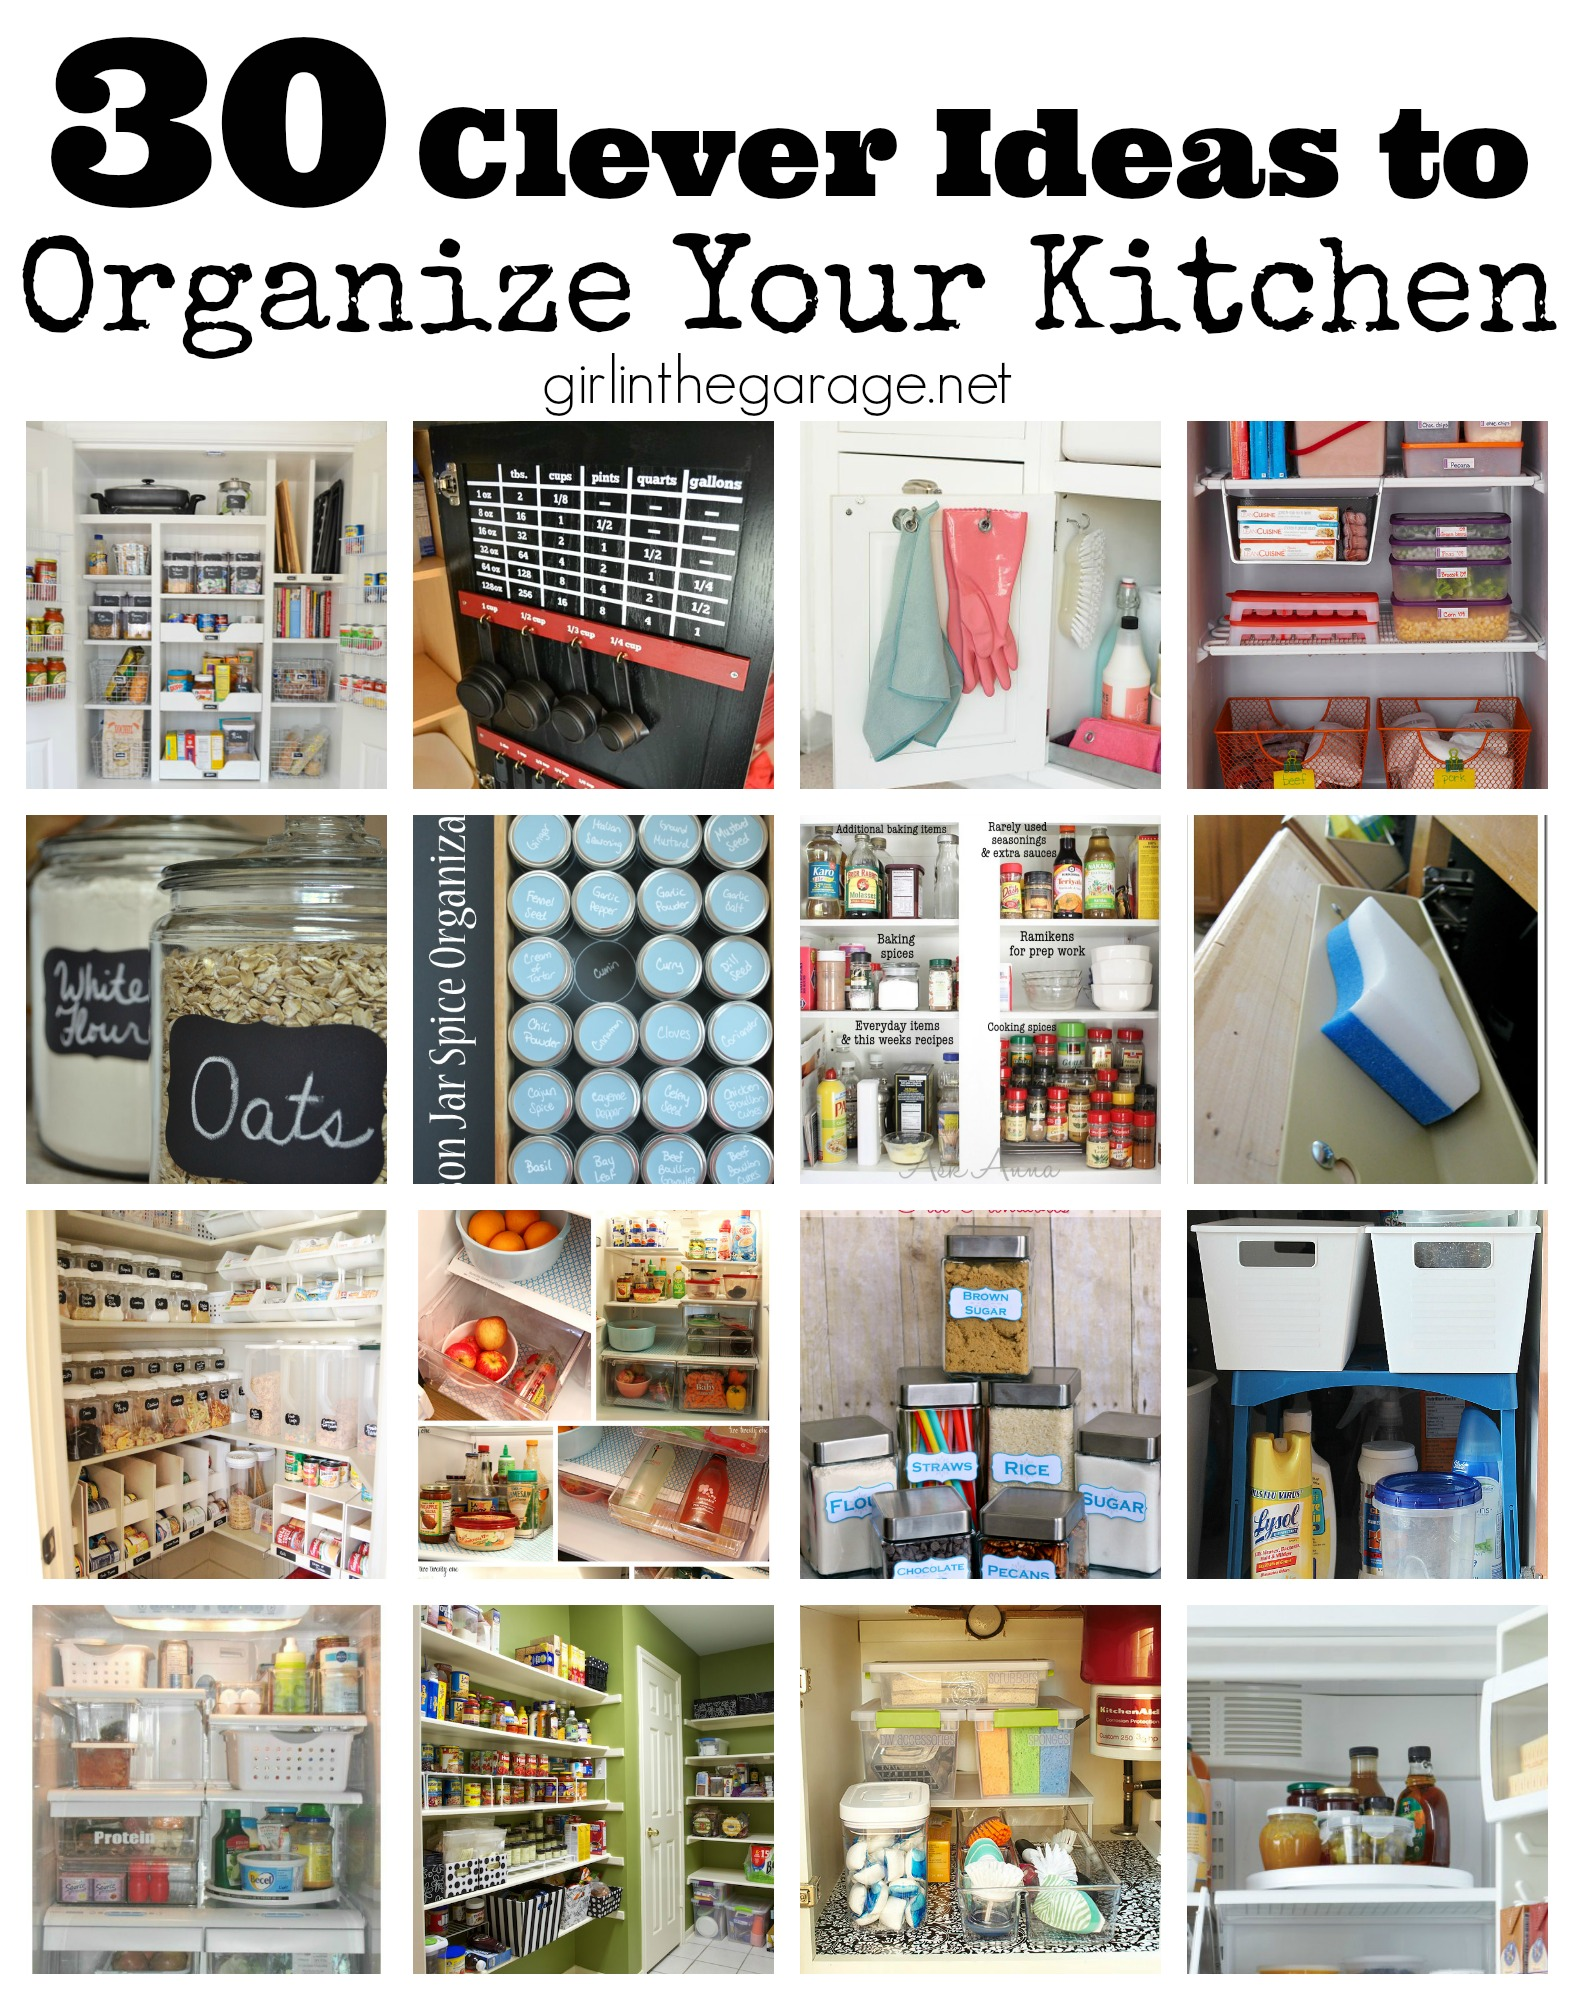 To Organize Kitchen 30 Clever Ideas To Organize Your Kitchen Girl In The Garage